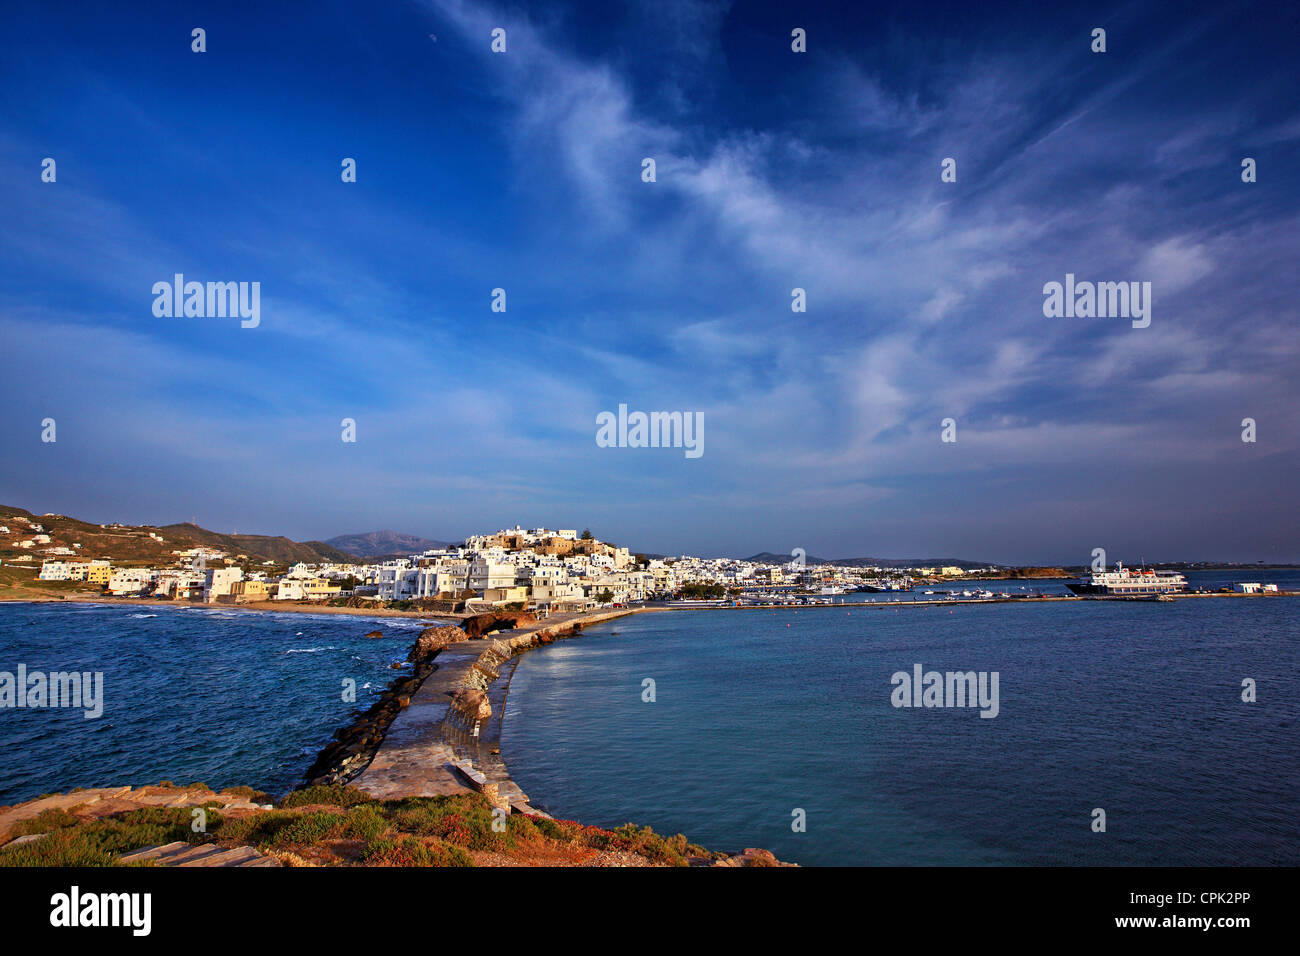 The Chora ('capital') of Naxos island with the castle of Sanoudos on top, as seen from the 'Portara', - Stock Image